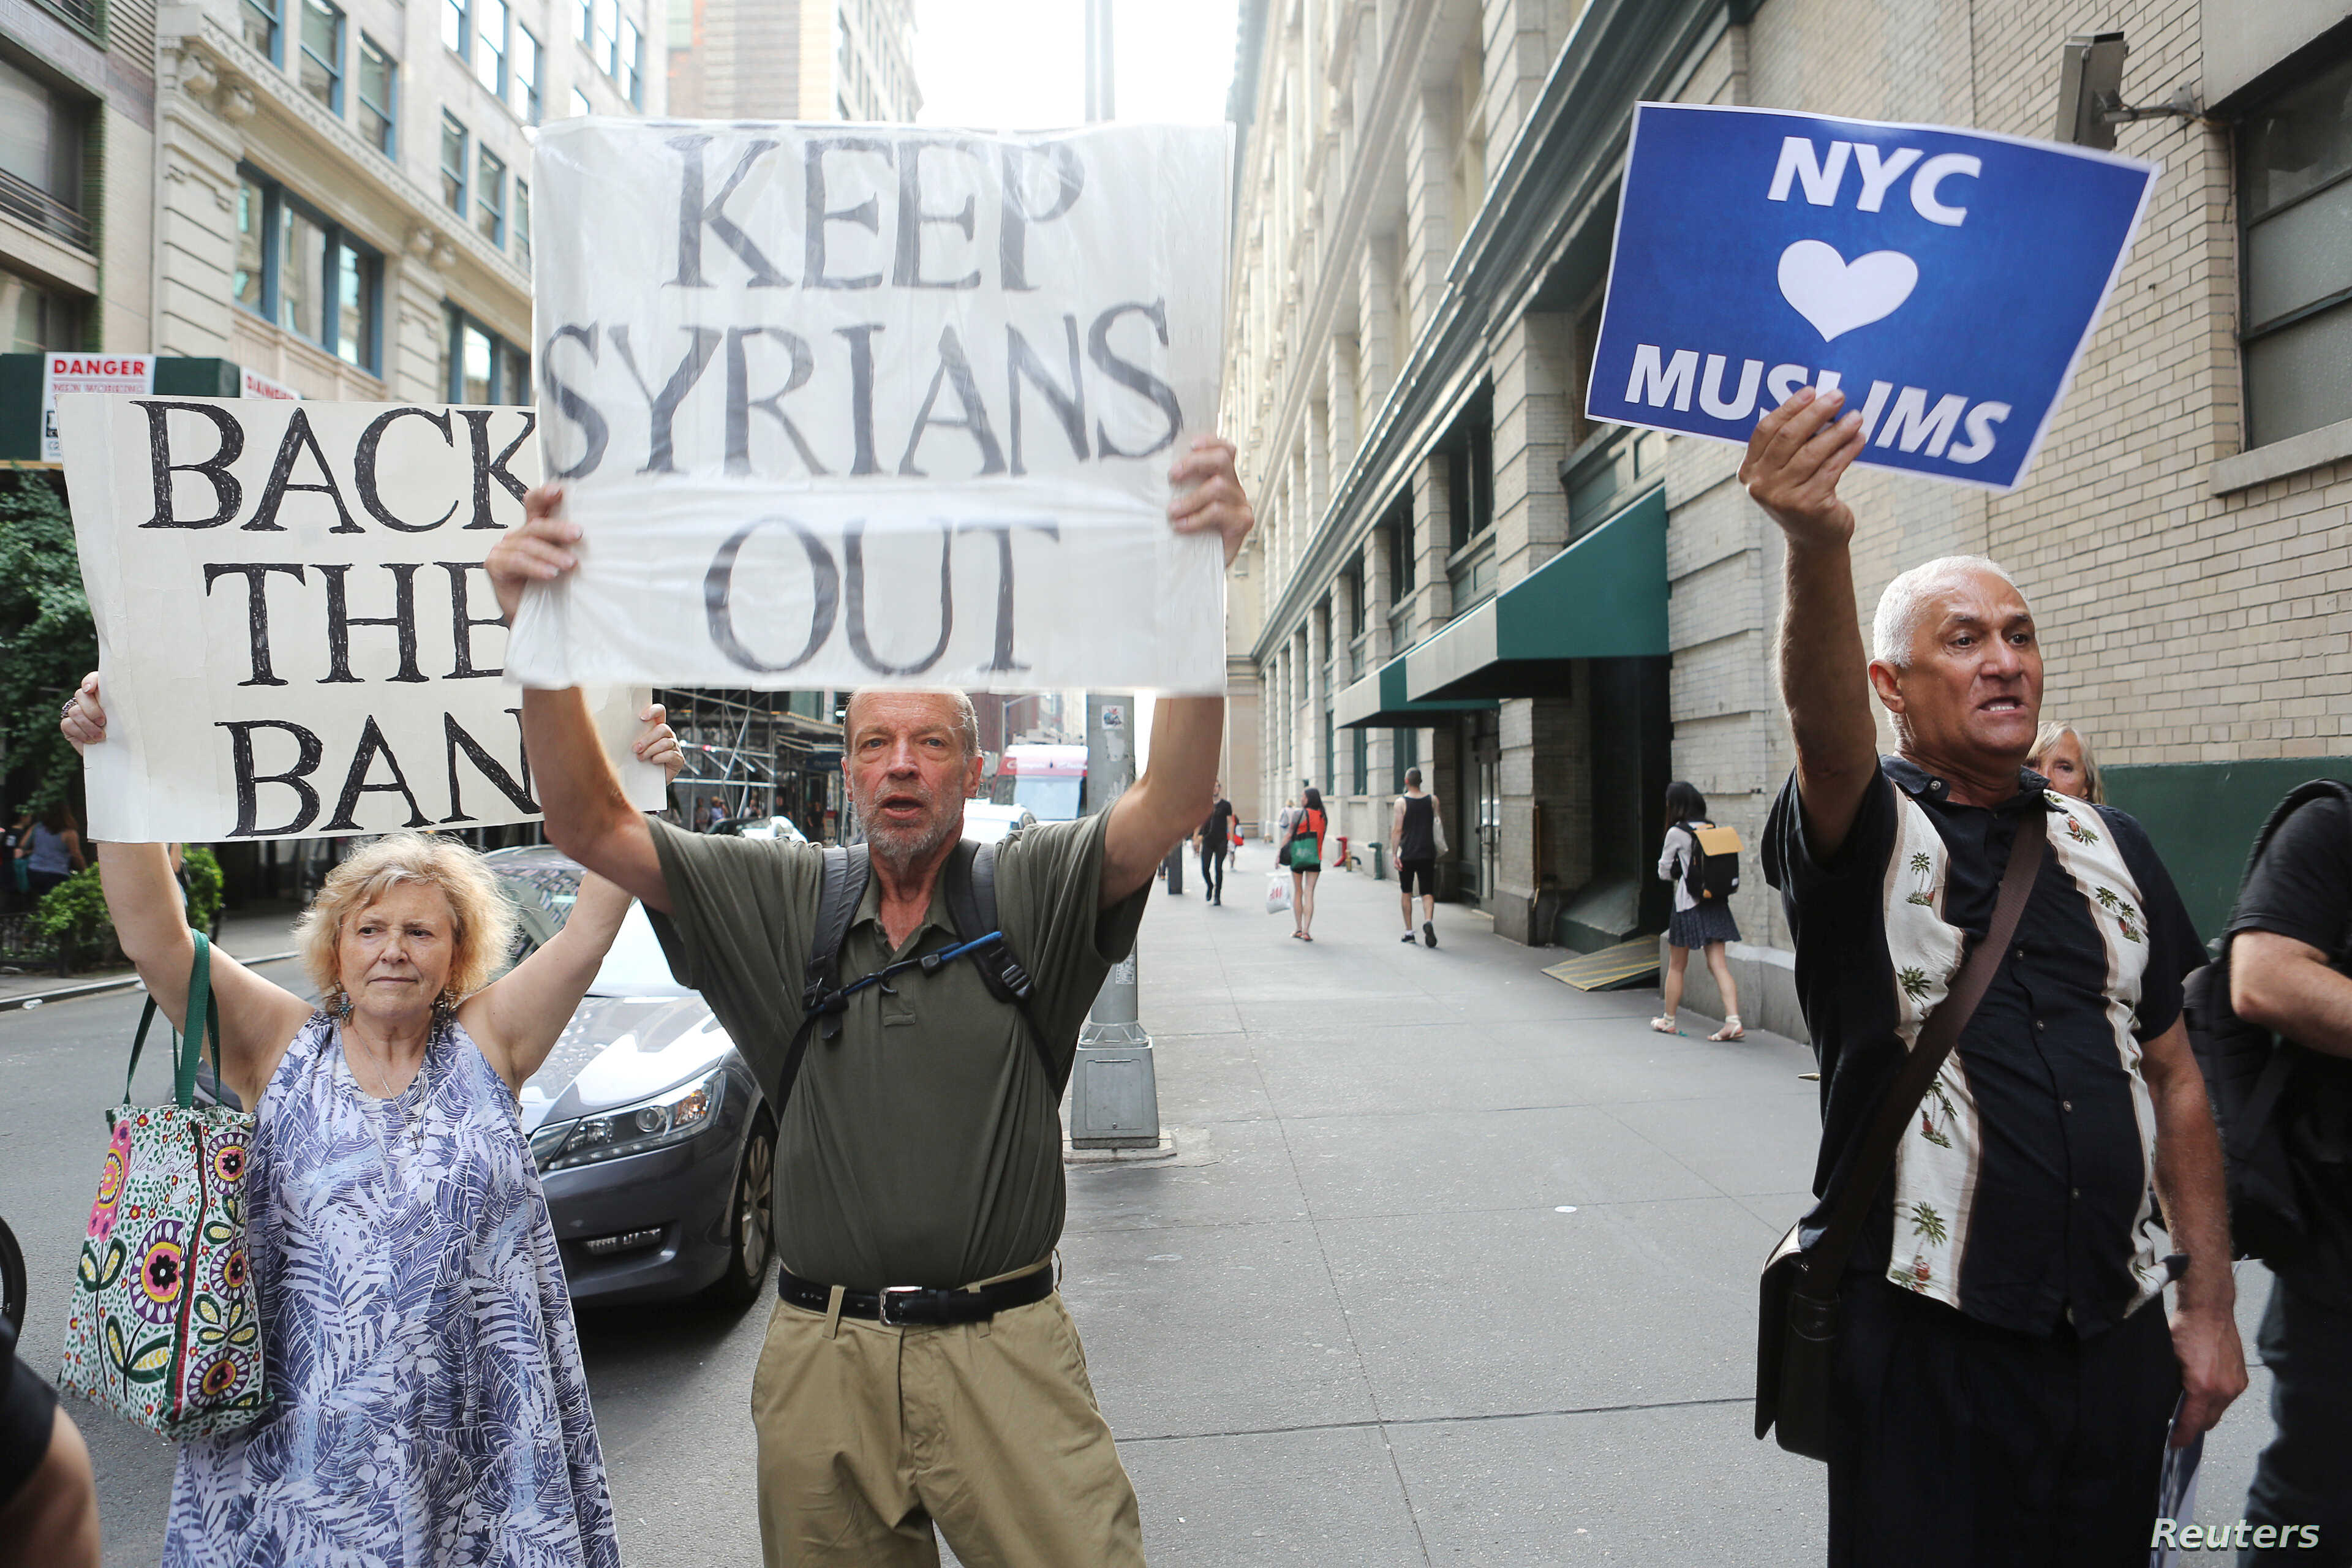 """A man holds a sign reading """"NYC hearts Muslims"""" as two other people hold signs reading """"Back the Ban"""" and """"Keep Syrians Out"""" at protests in response to U.S. President Donald Trump's limited travel ban, approved by the U.S. Supreme Court, in New York ..."""